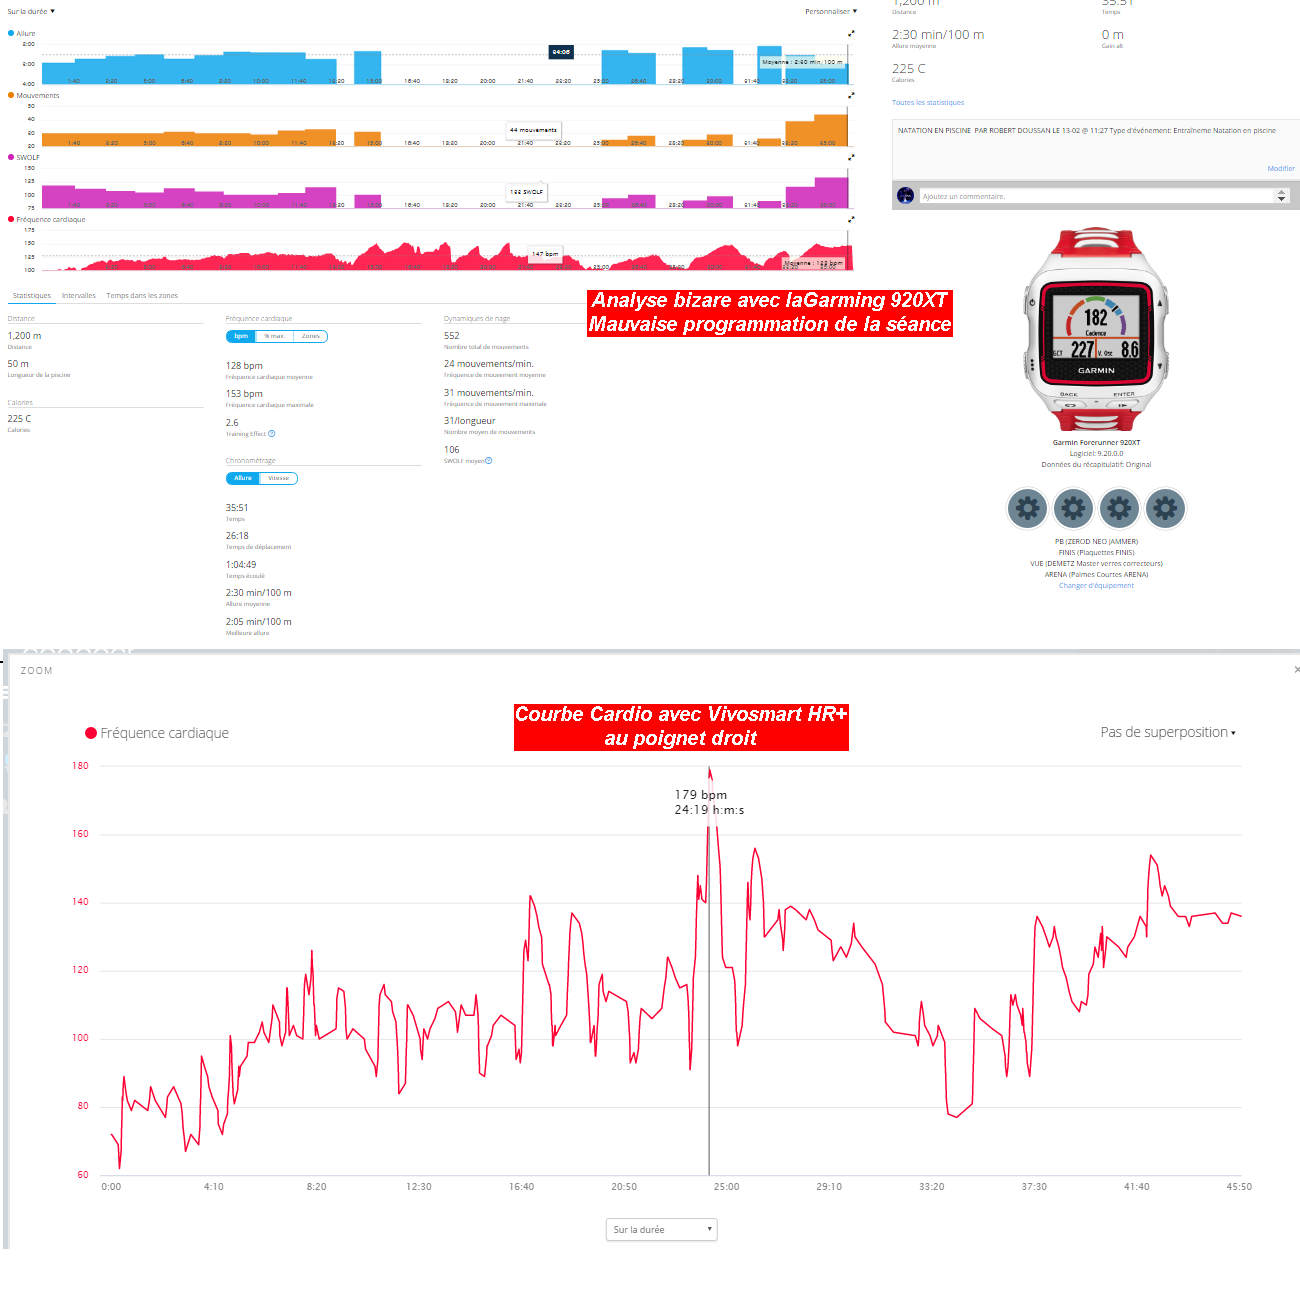 analyse-comparative-garmin-vivosmart